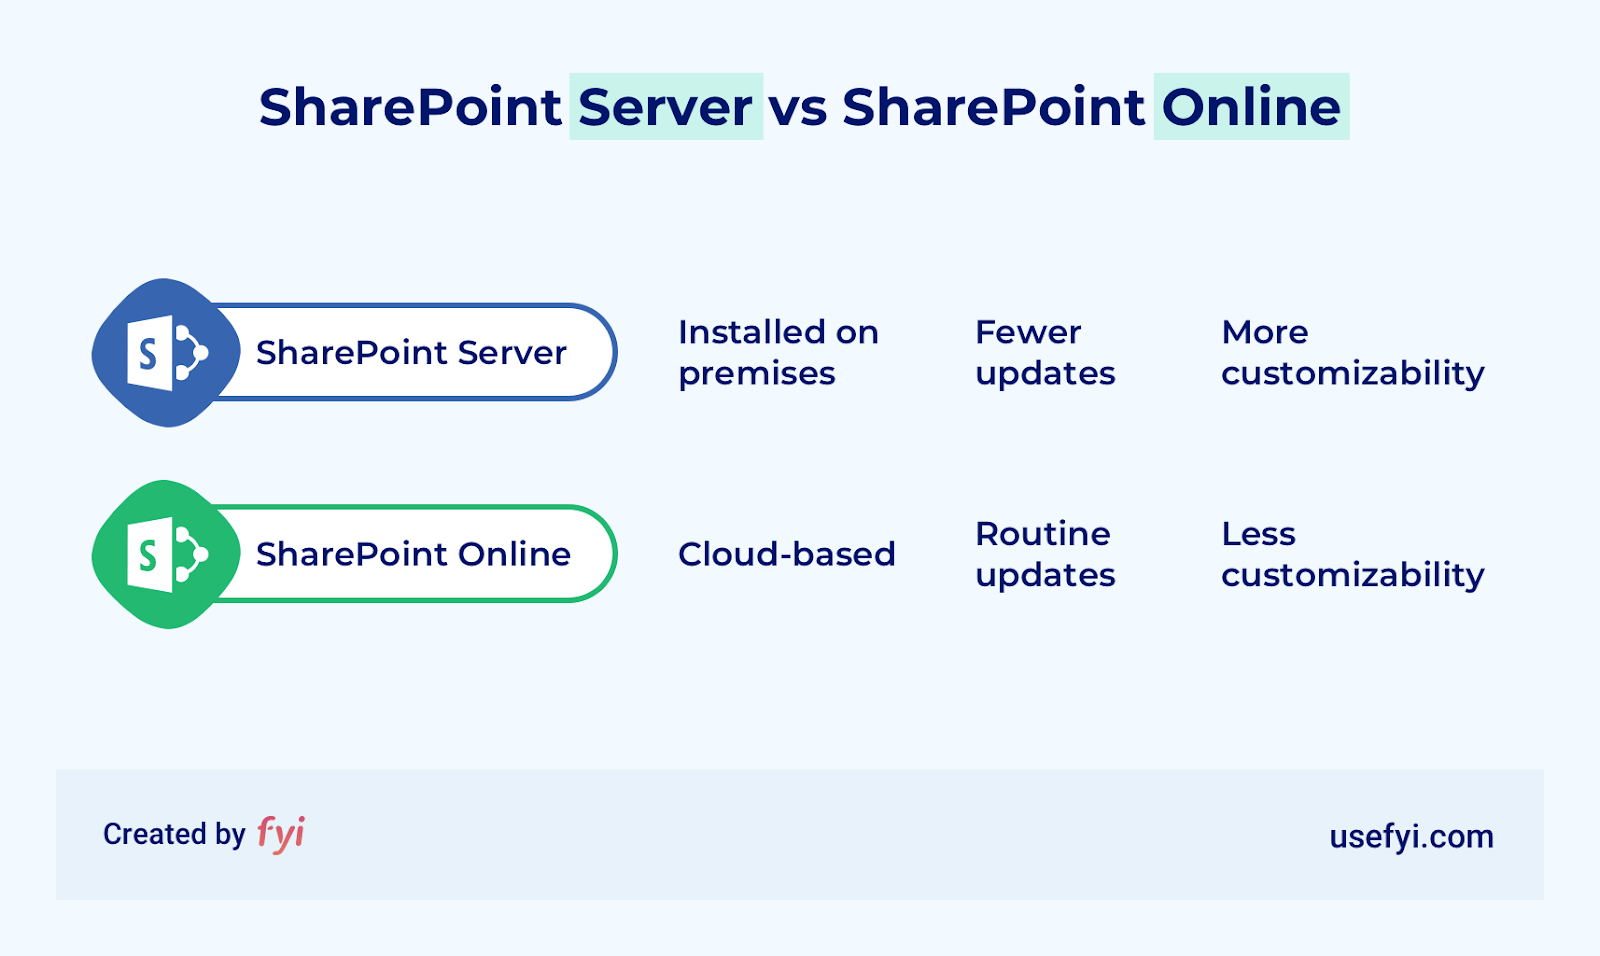 sharepoint server vs sharepoint online key features comparison